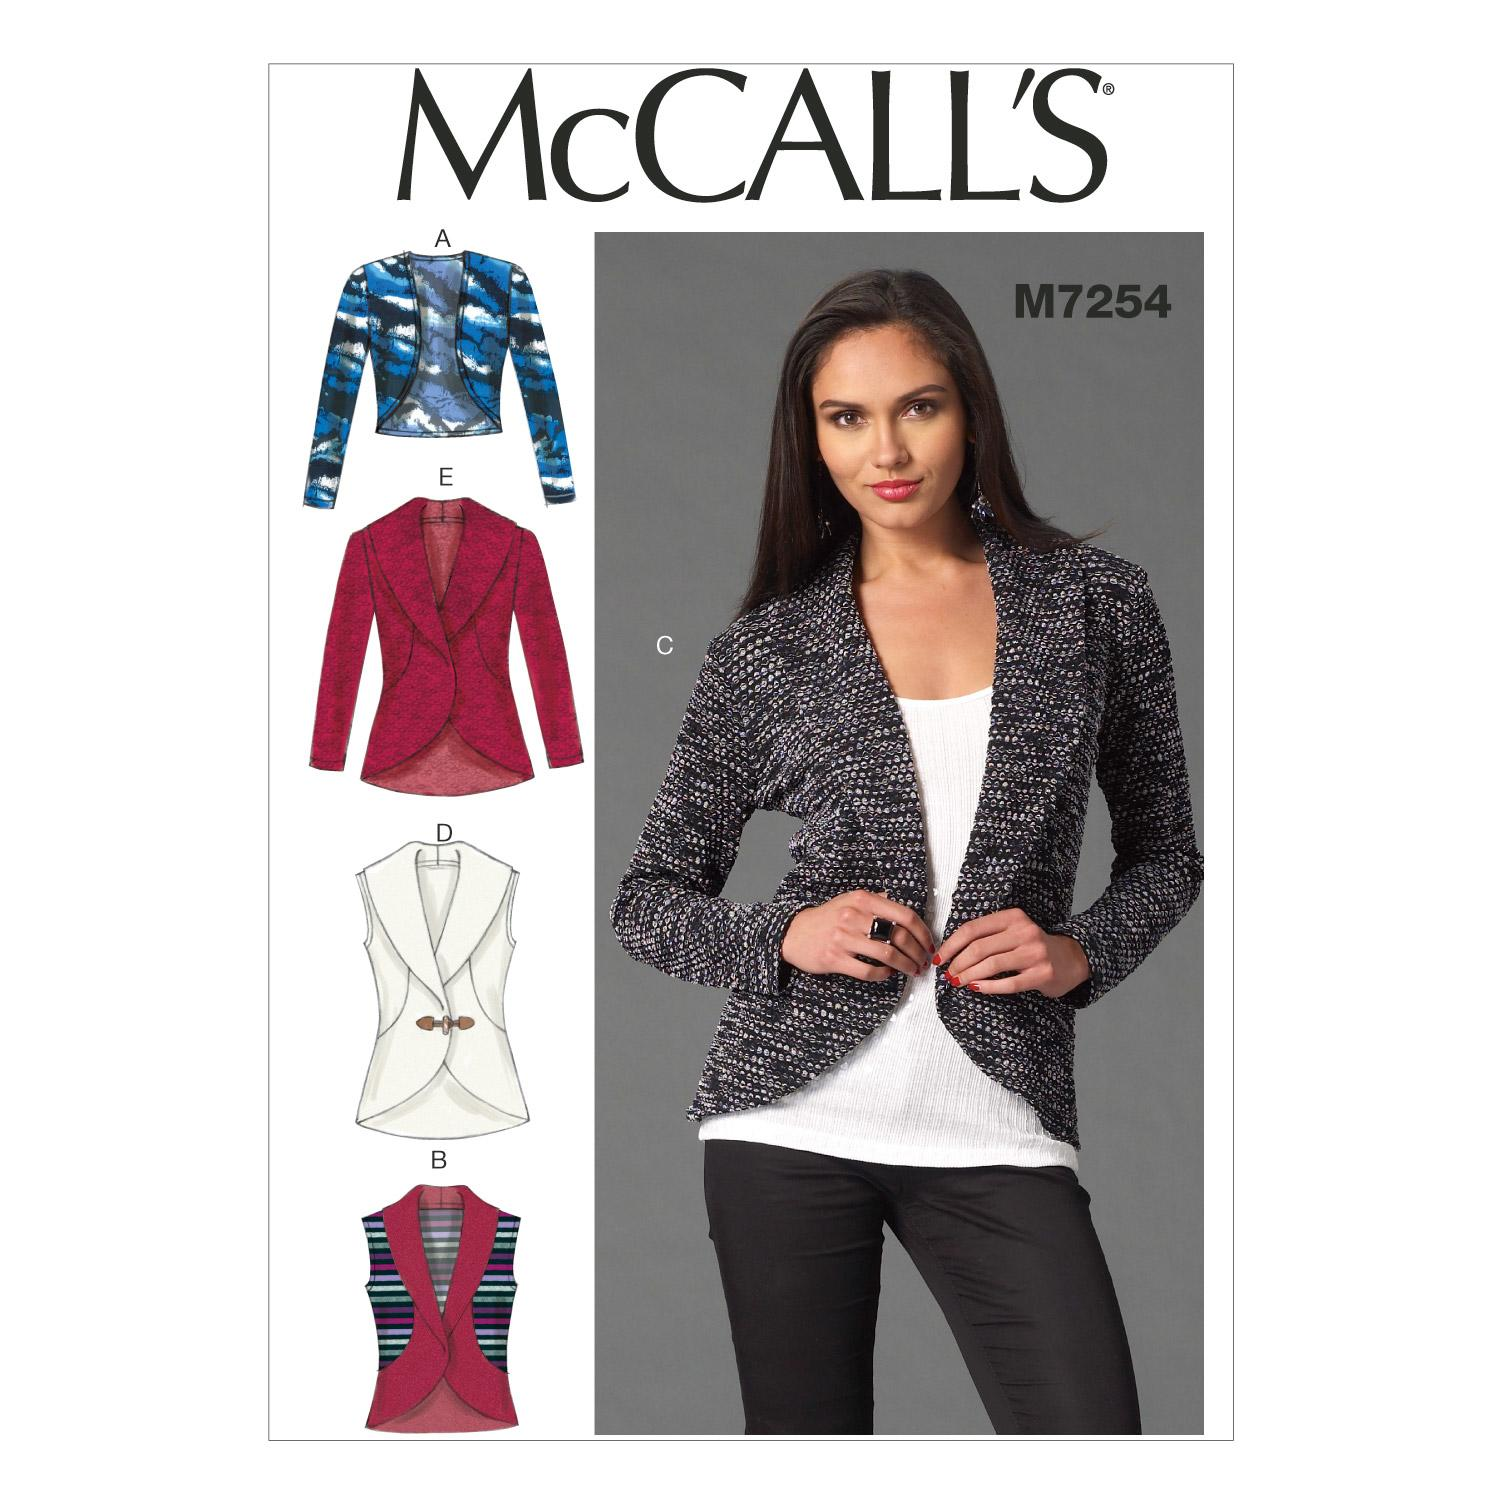 McCalls M7254 Jackets/Vests